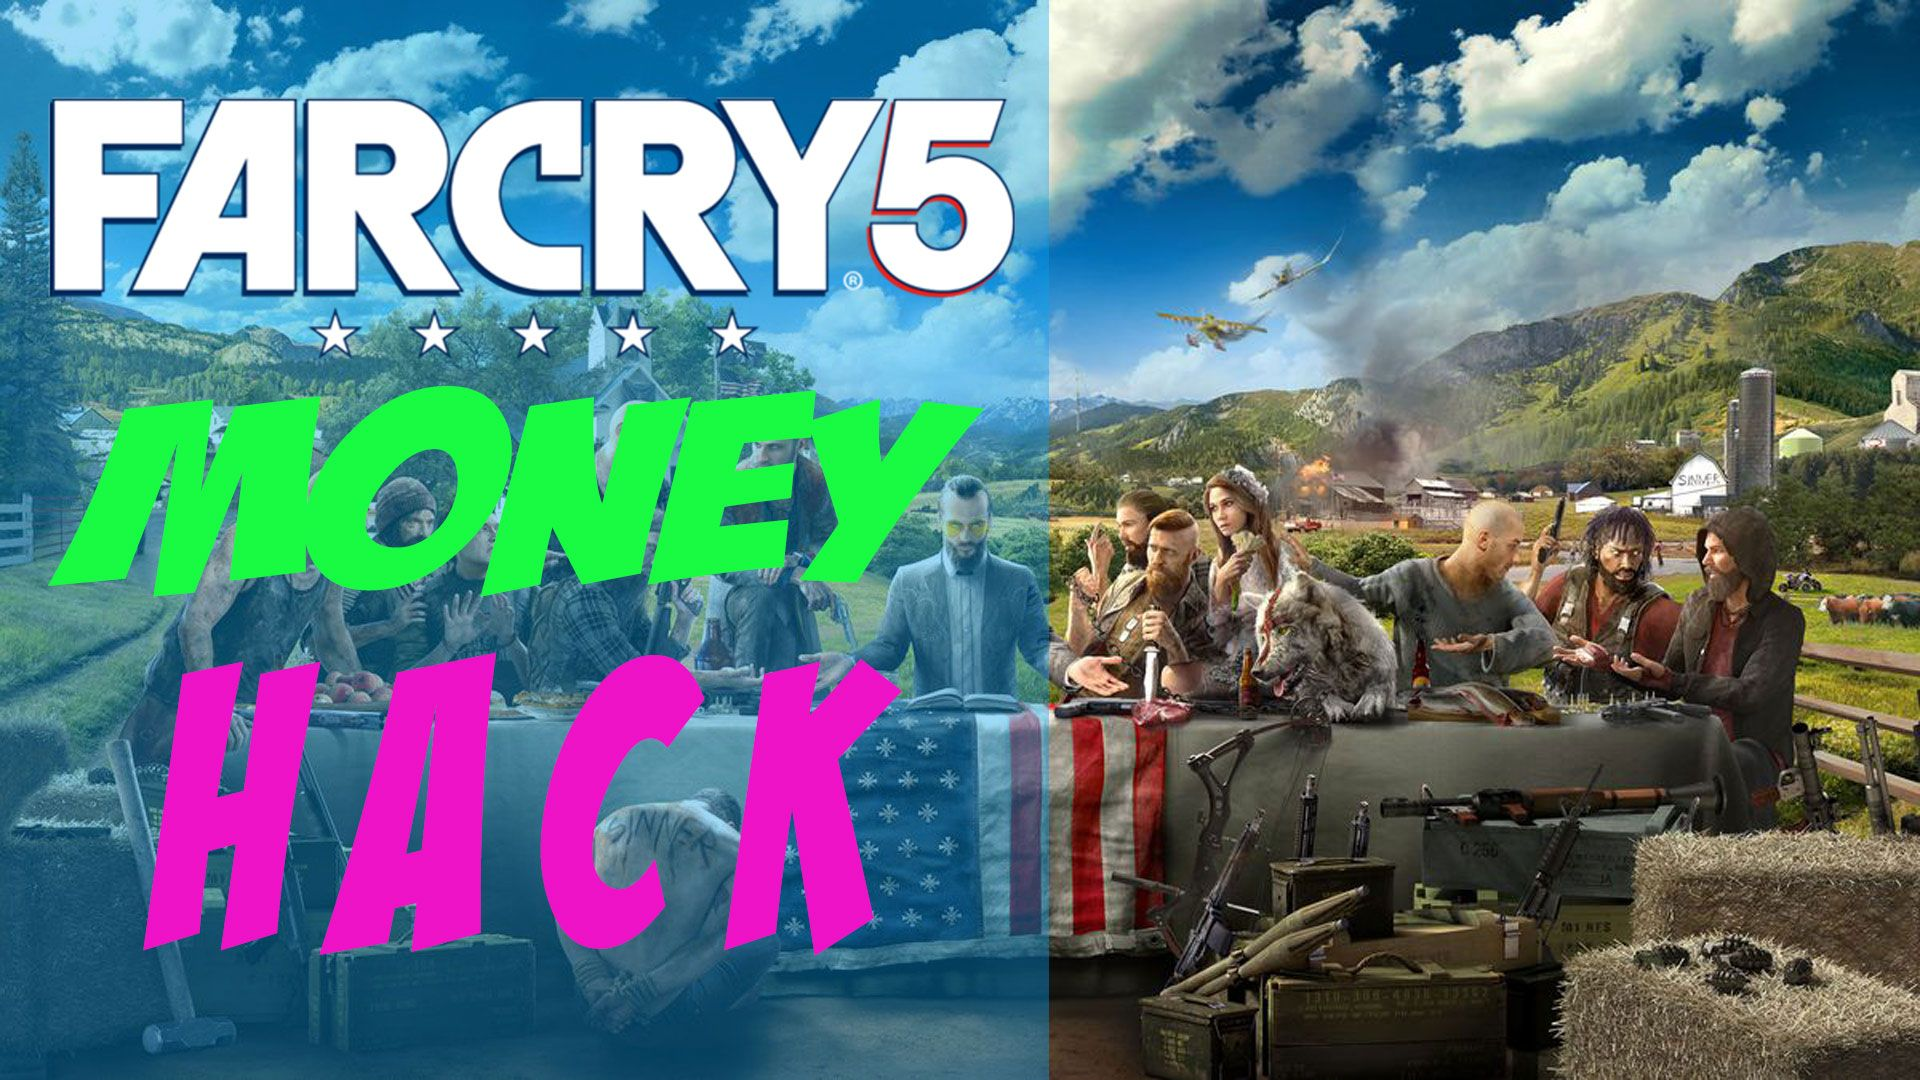 Far Cry 5 Hack 2018 How To Get Unlimited Money Glitch Generator Working On Ps4 Xbox One And Pc Far Cry 5 Hacks Crying